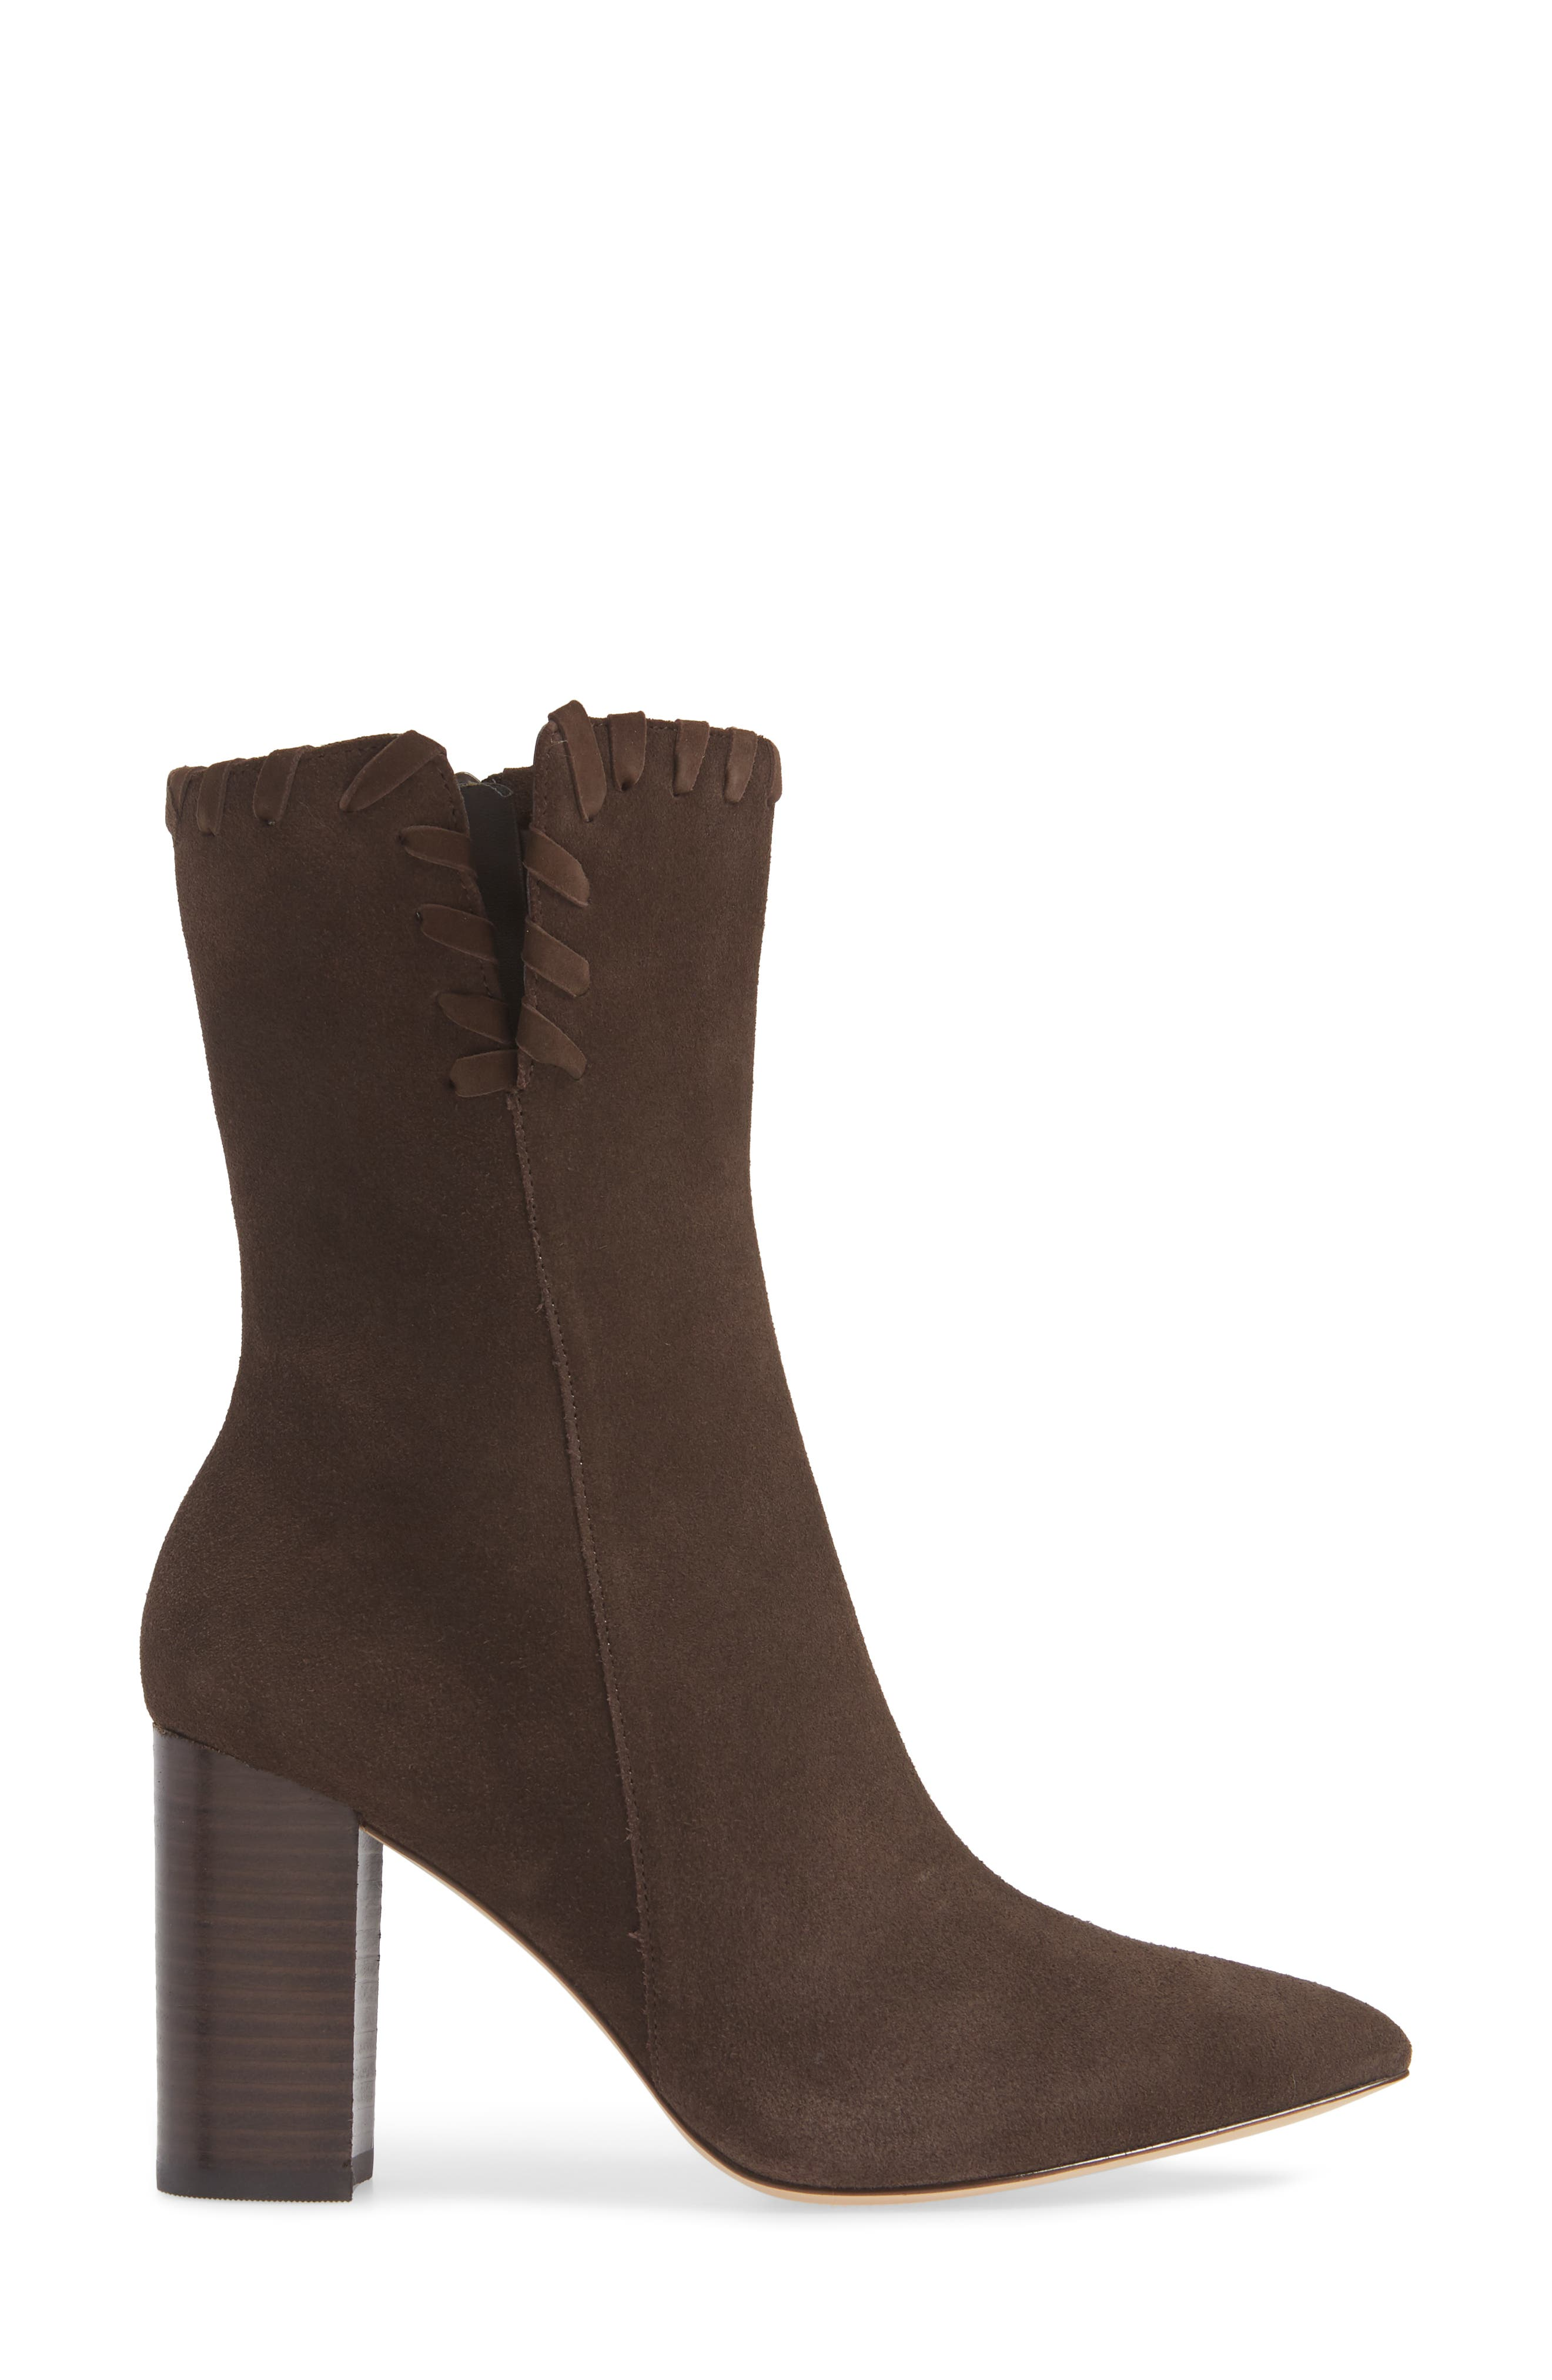 Camilla Bootie,                             Alternate thumbnail 3, color,                             CHOCOLATE SUEDE